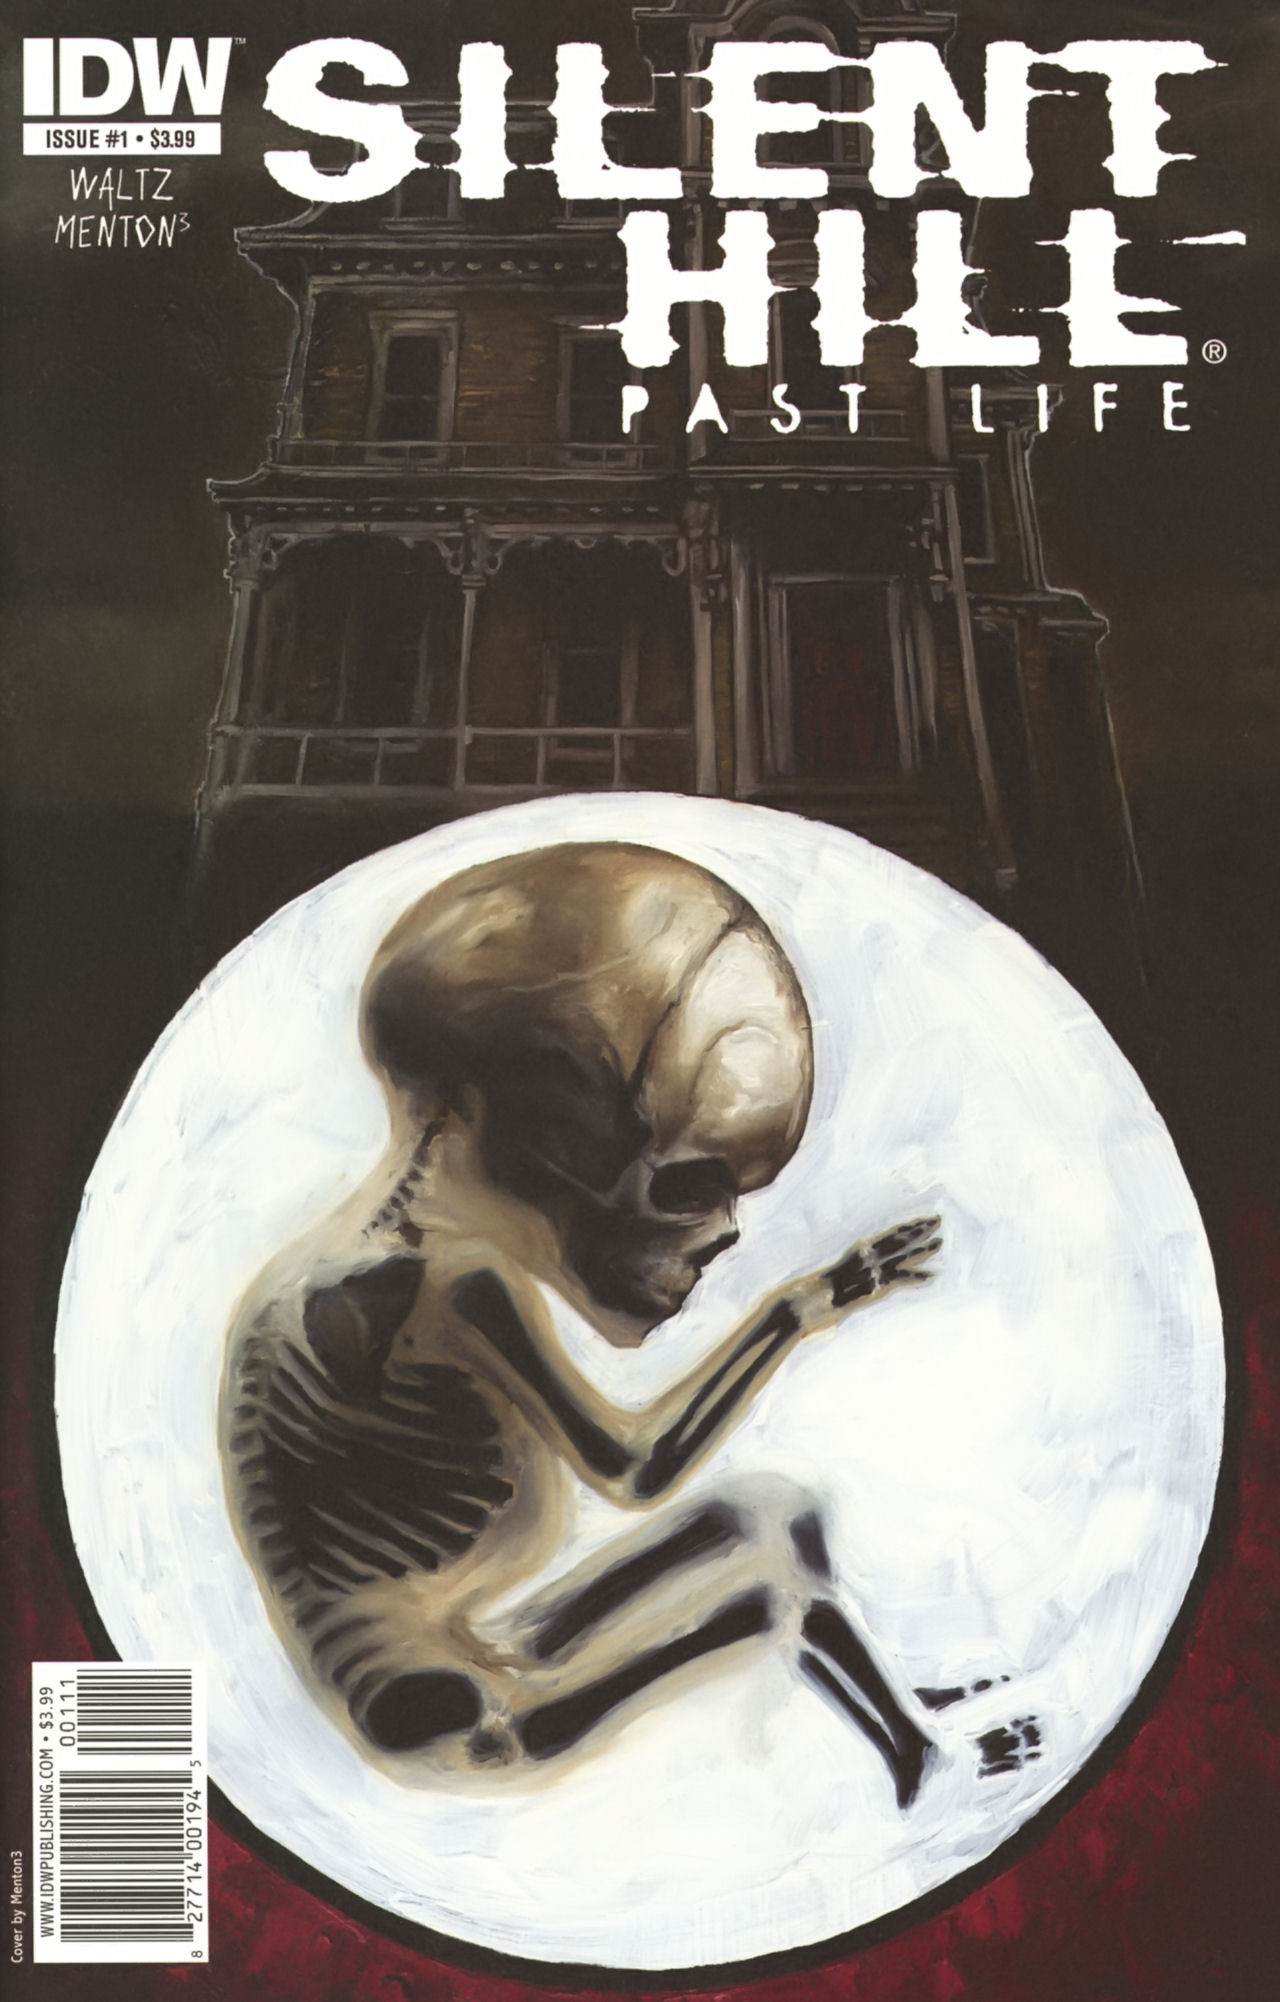 Read online Silent Hill: Past Life comic -  Issue #1 - 1